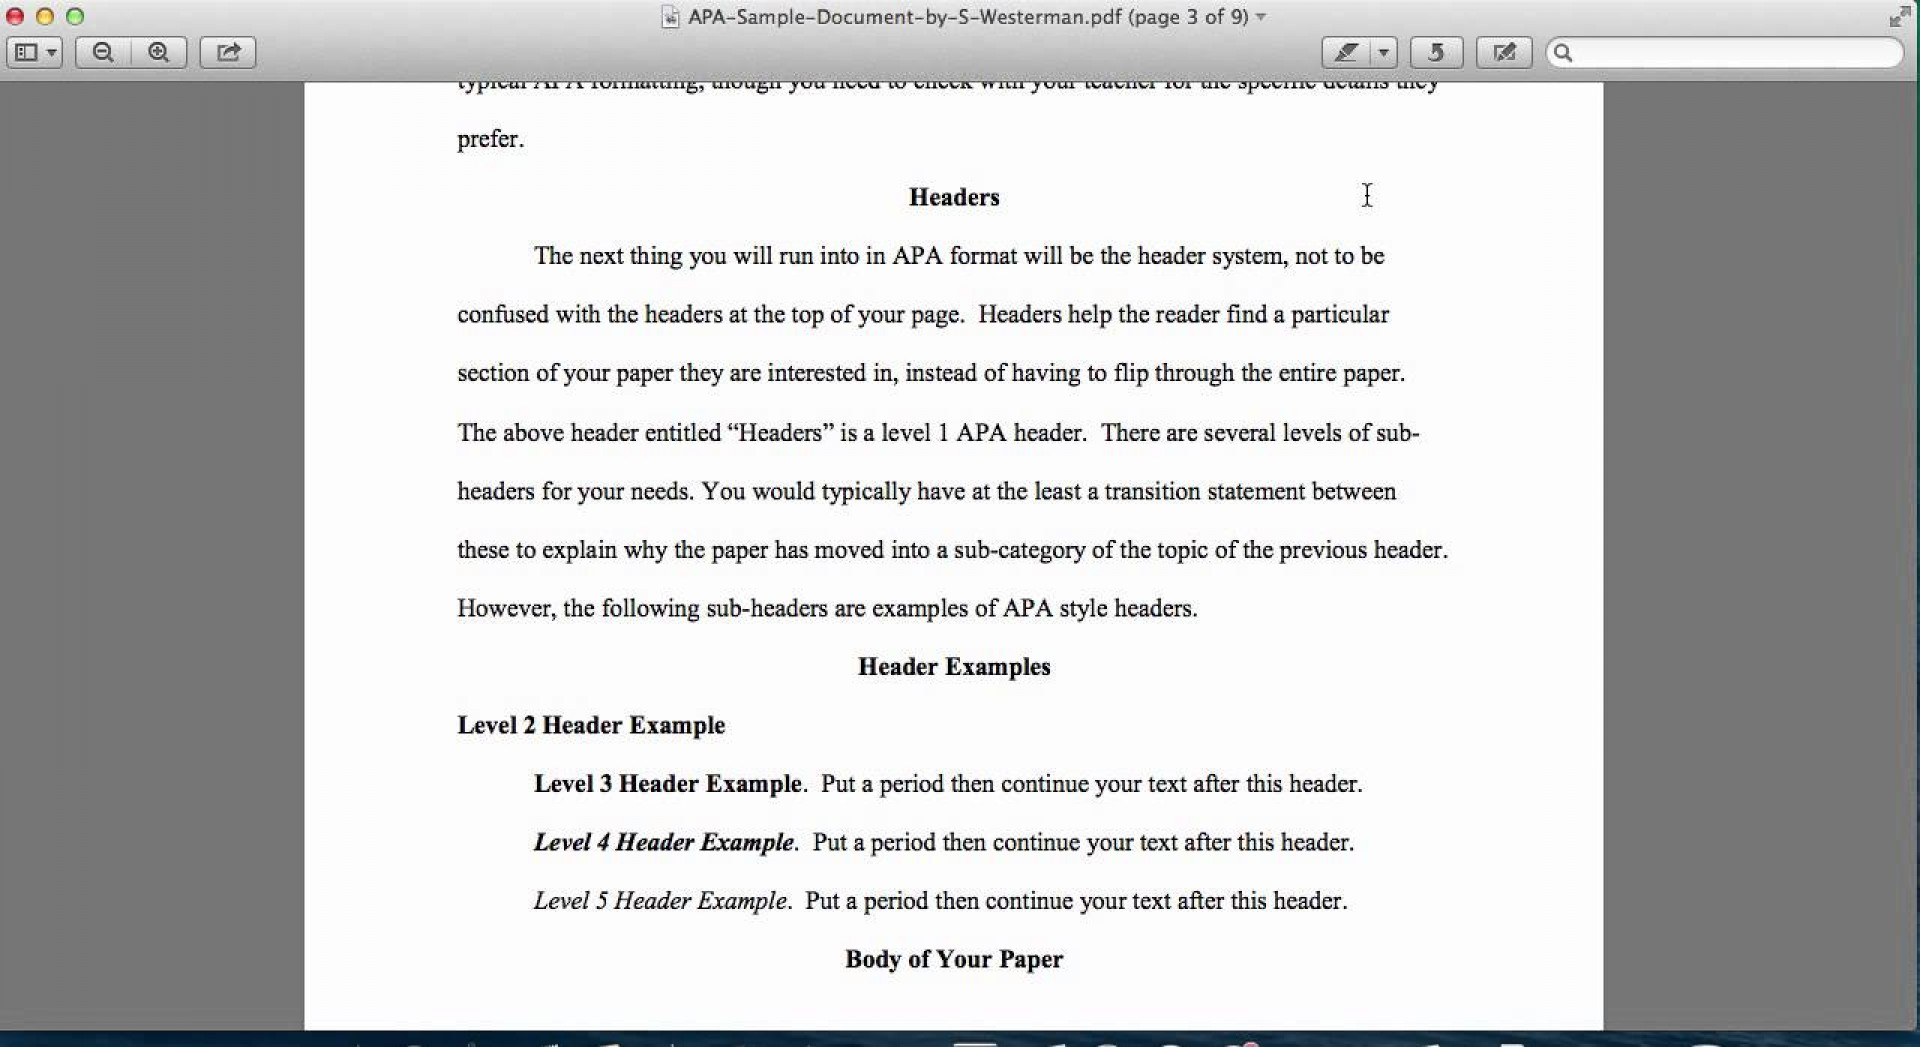 003 Research Paper Maxresdefault Apa Format Best Introduction Example 1920